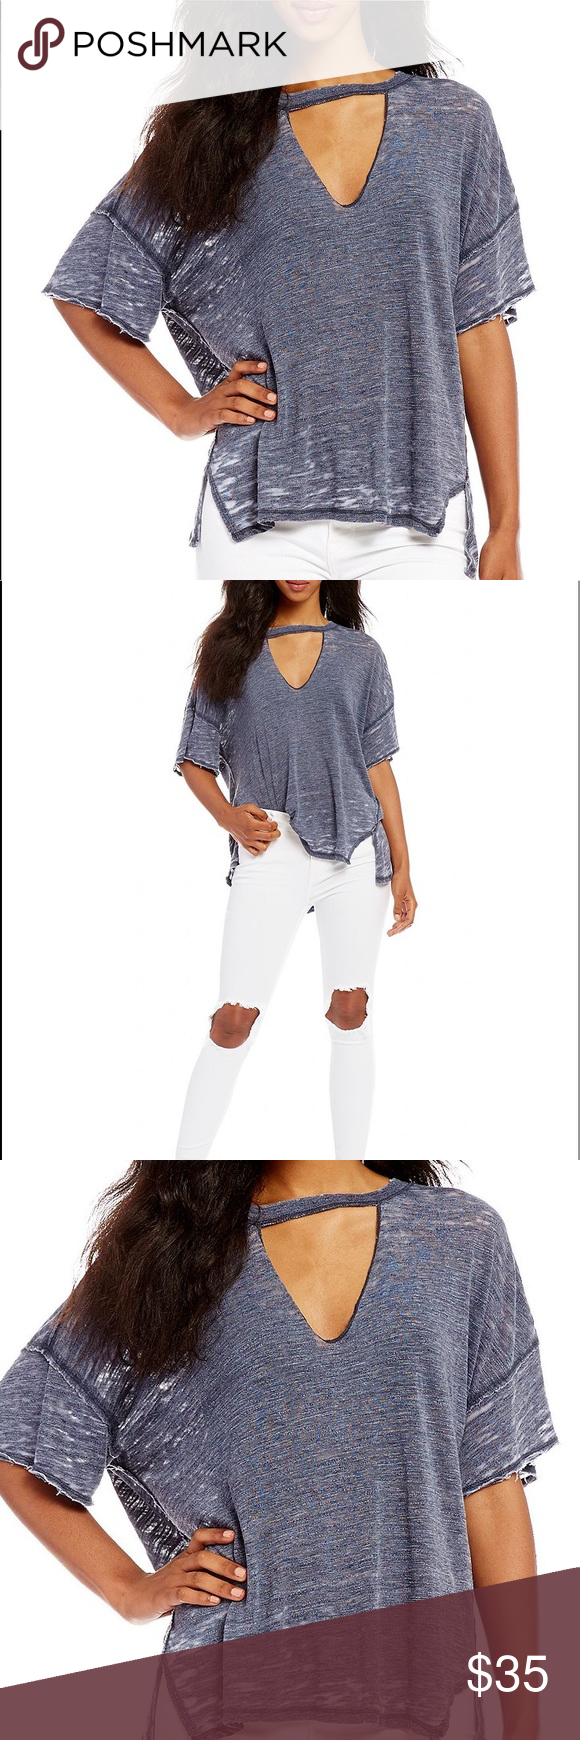 fbad064d32cb FREE PEOPLE TOP FREE PEOPLE JORDAN CUT OUT V-NECK T Oversized silhouette  Cutout v